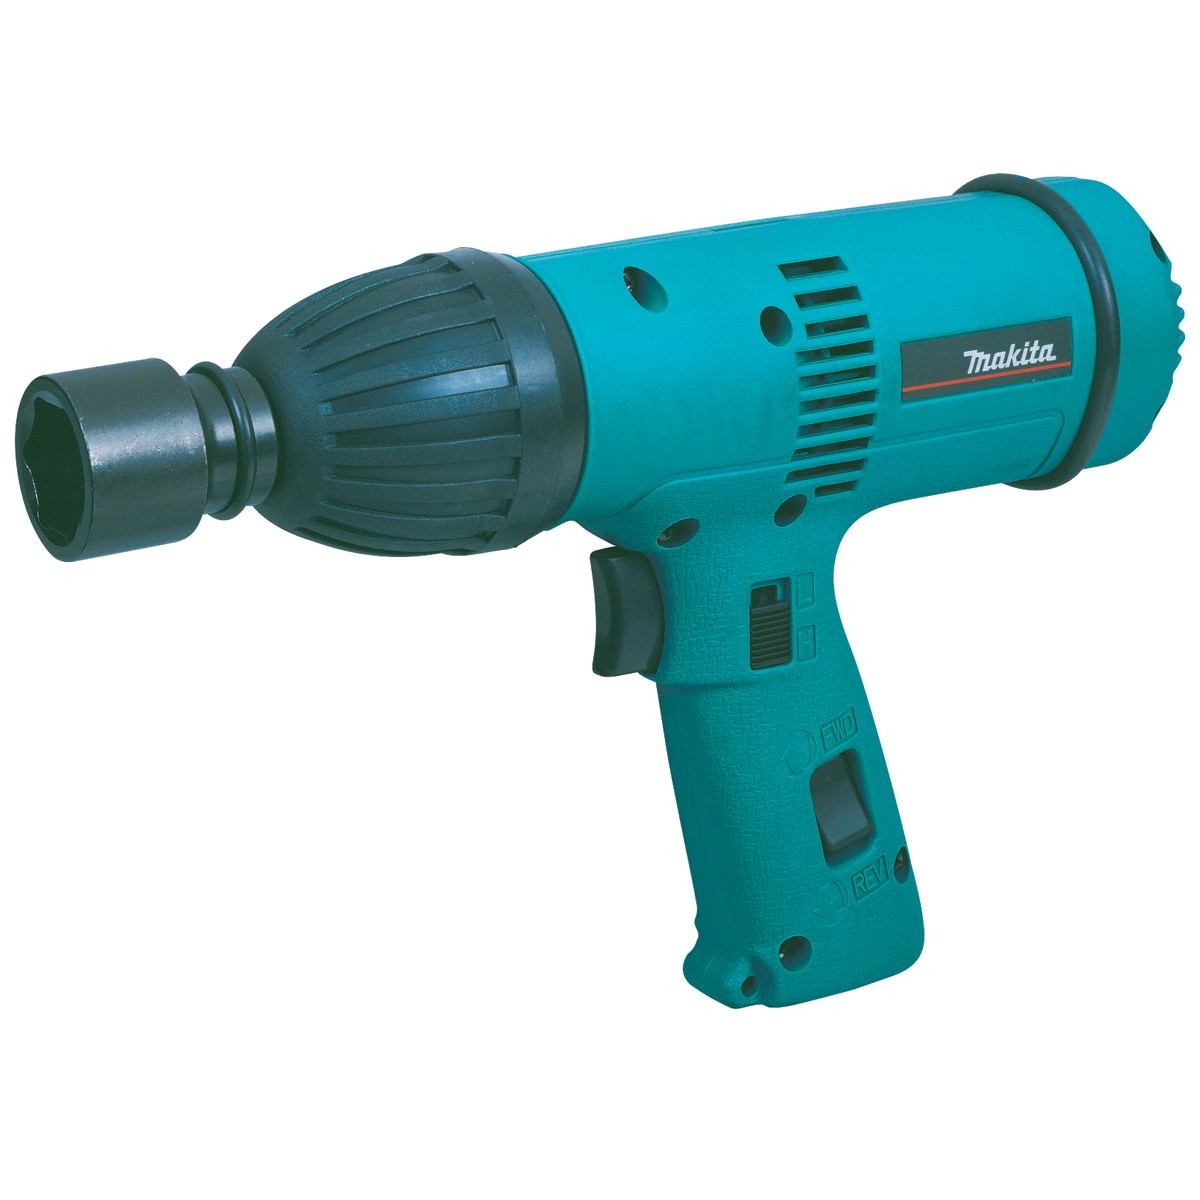 "Makita 6904VH 1/2"" Square Drive Impact Wrench 110v"